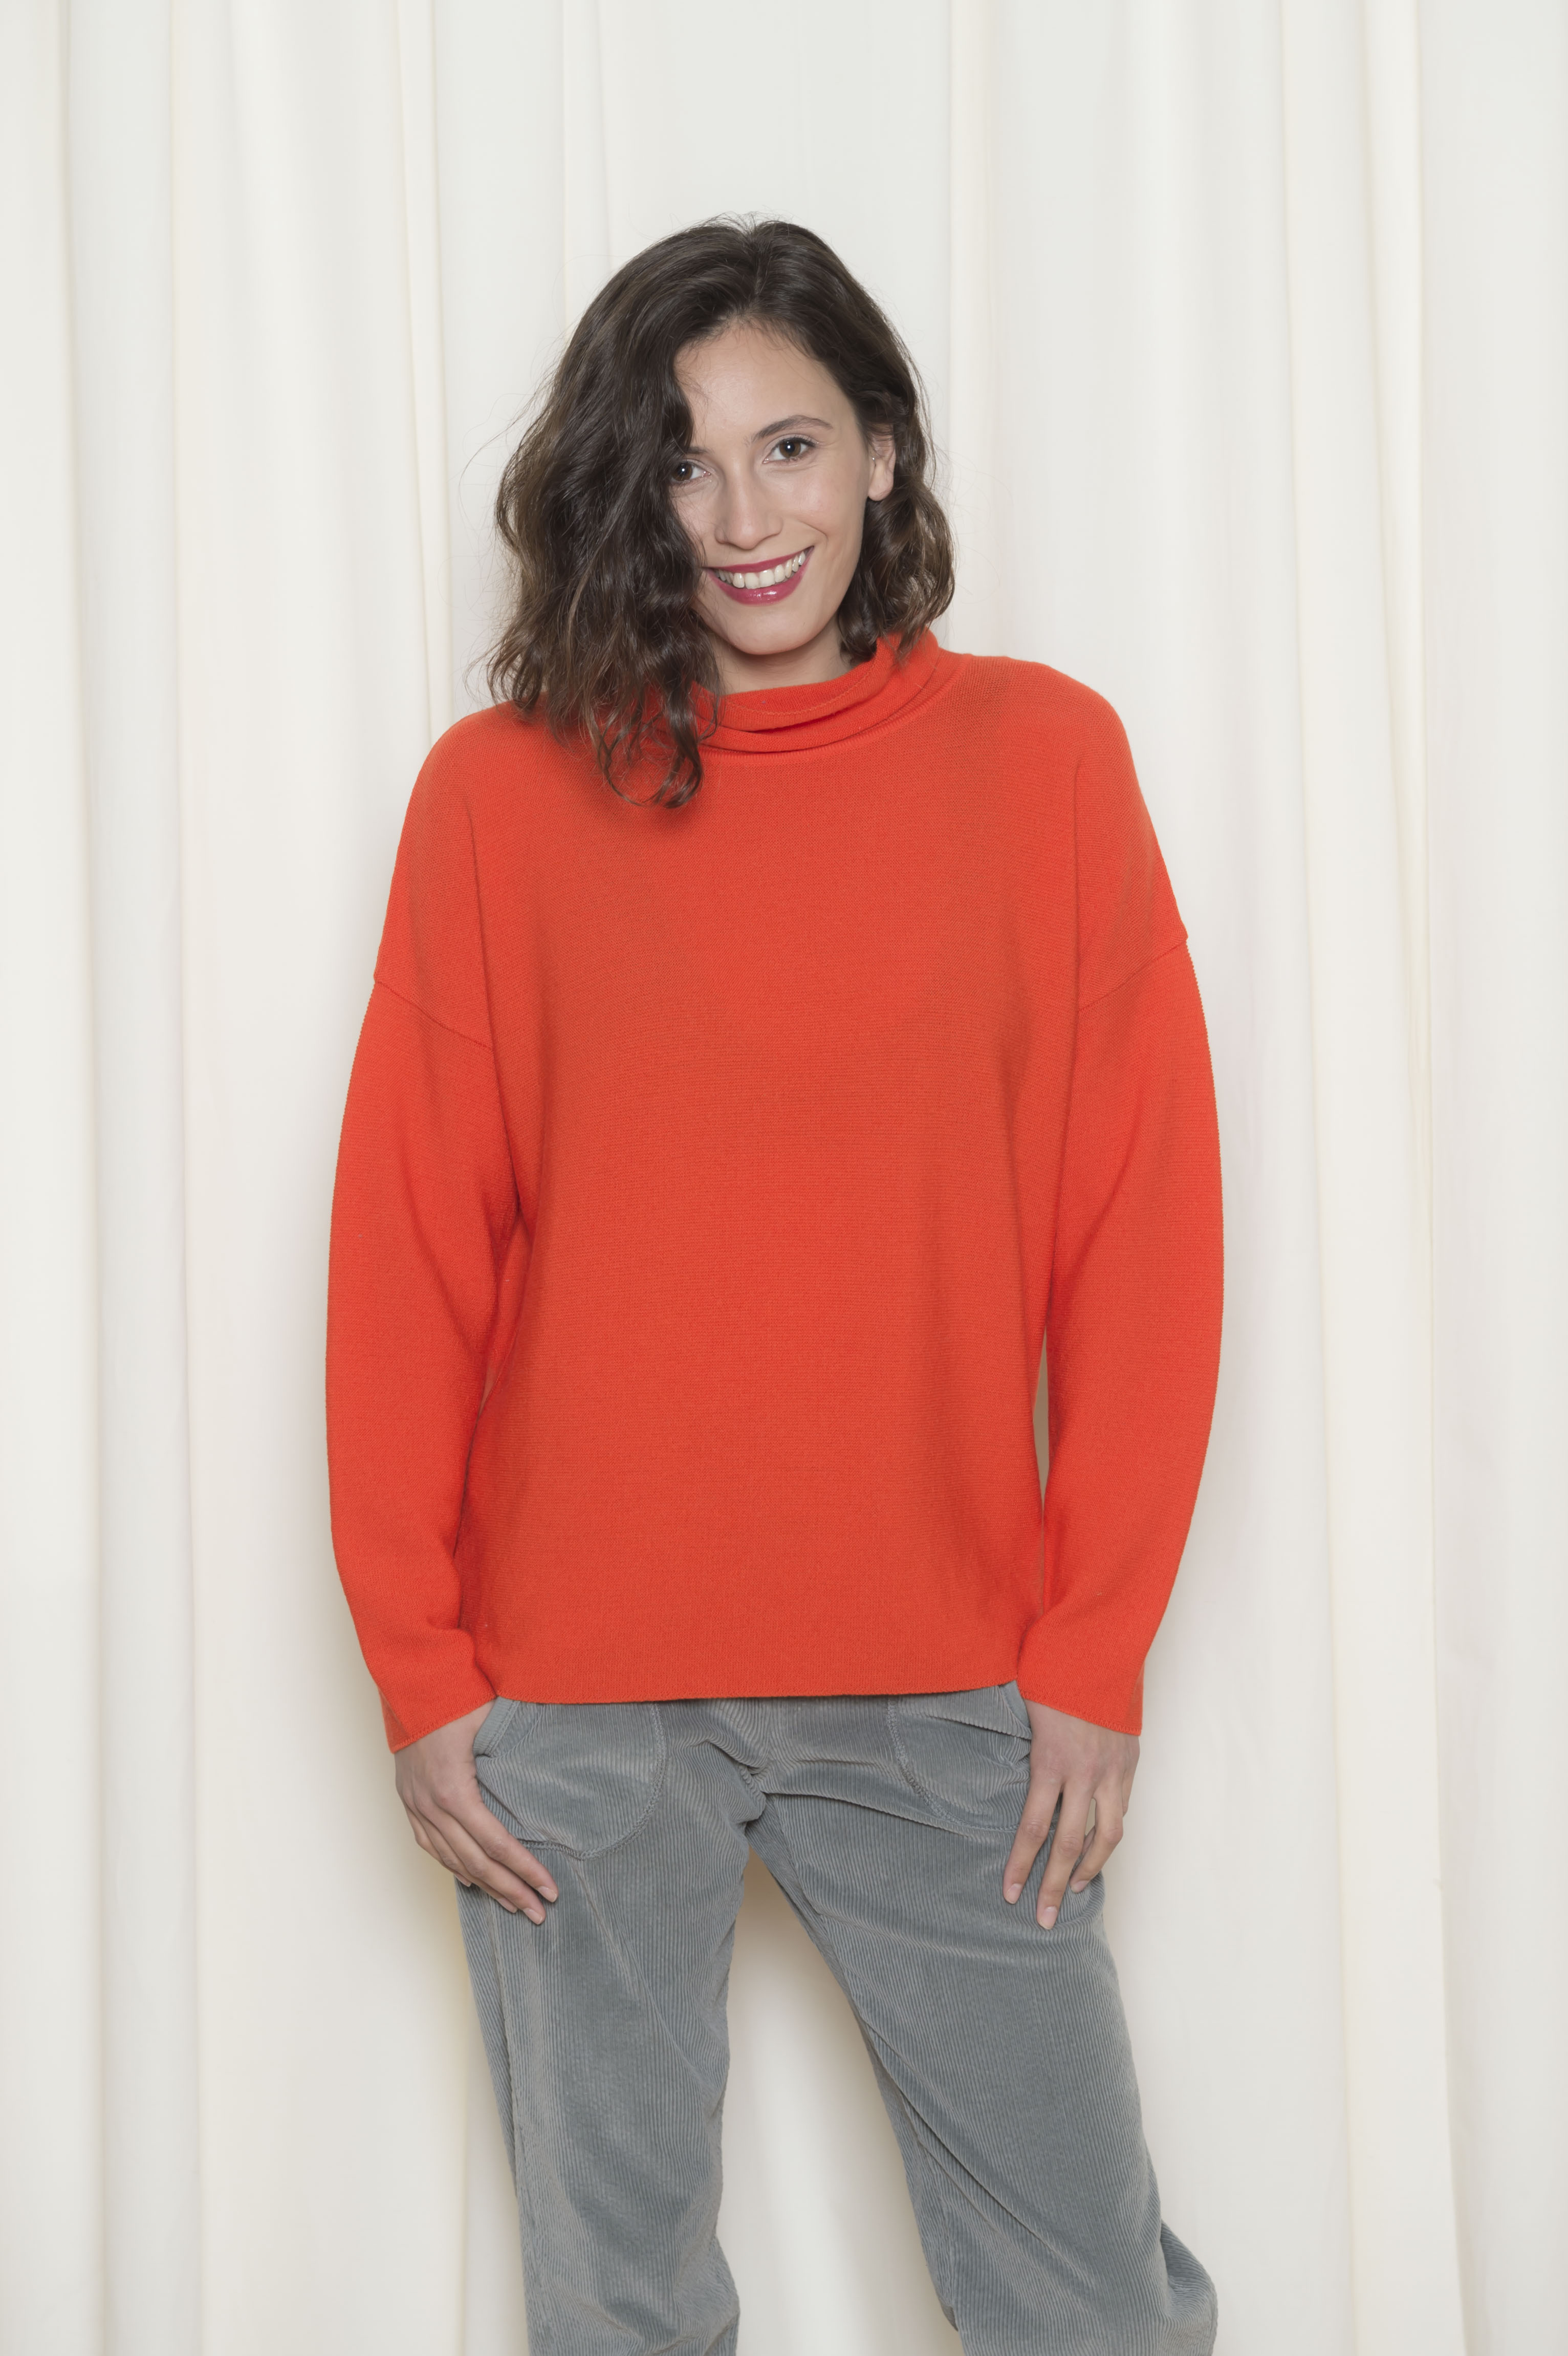 Shop online for Men's Turtleneck Sweaters at tennesseemyblogw0.cf Find classic collars & mock turtlenecks. Free Shipping. Free Returns. All the time.